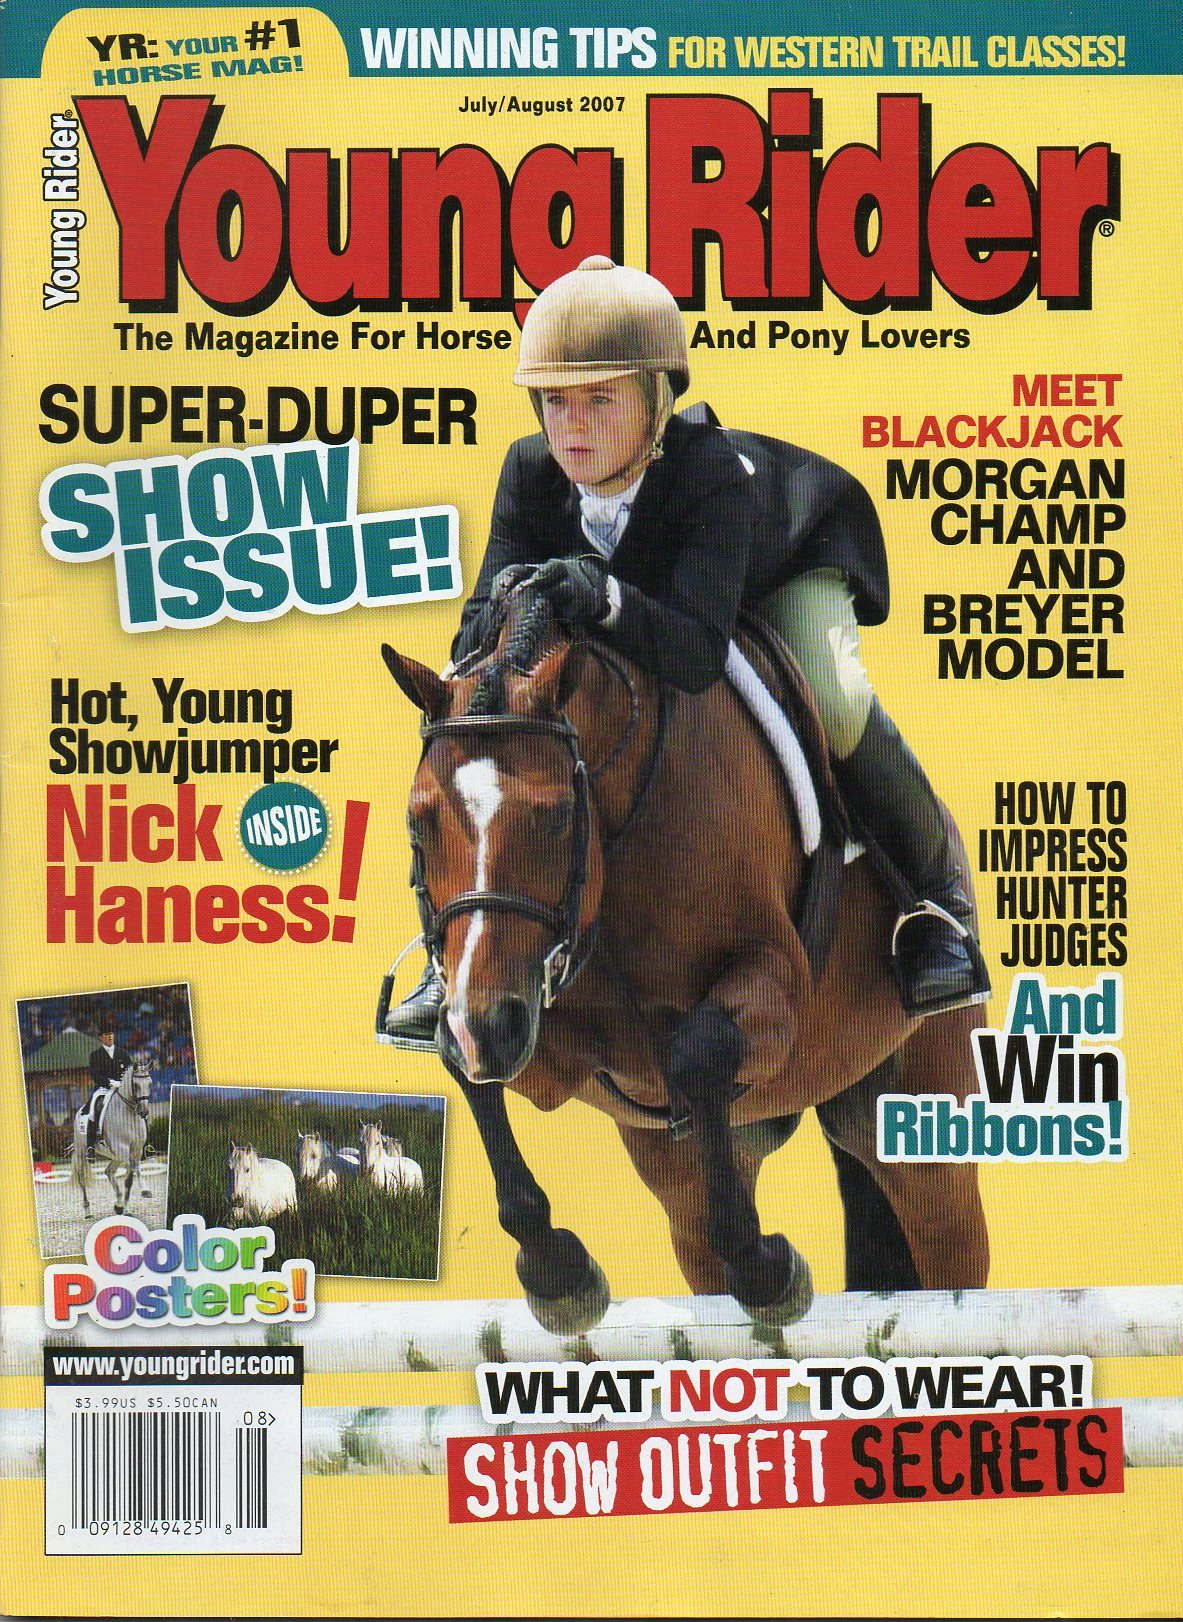 Read Online Young Rider July August 2007 The Magazine For Horse And Pony Lovers SUPER SHOW ISSUE Hot, Young Showjumper Nick Haness COLOR POSTERS Meet Black Jack Morgan Champ & Breyer Model PDF